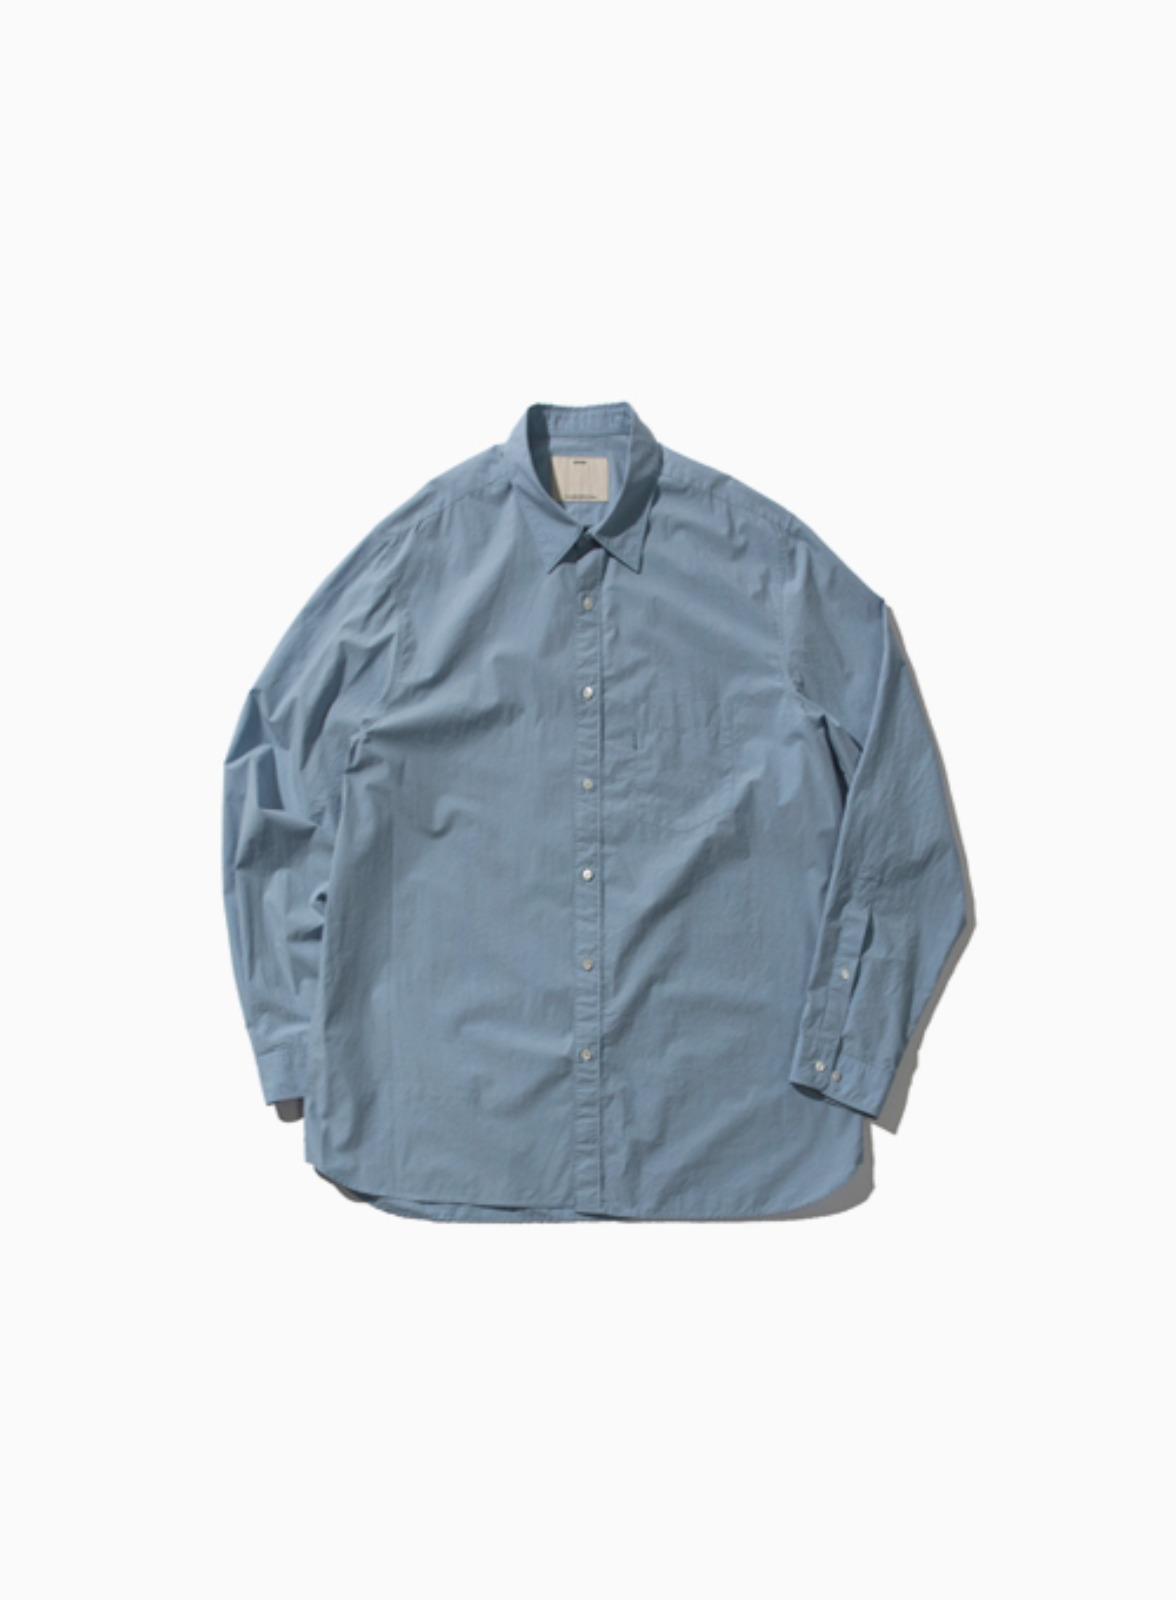 COMFORT SHIRT (BLUE)[COTTON 80/1 TYPEWRITER CLOTH RESILIENT FINISH]